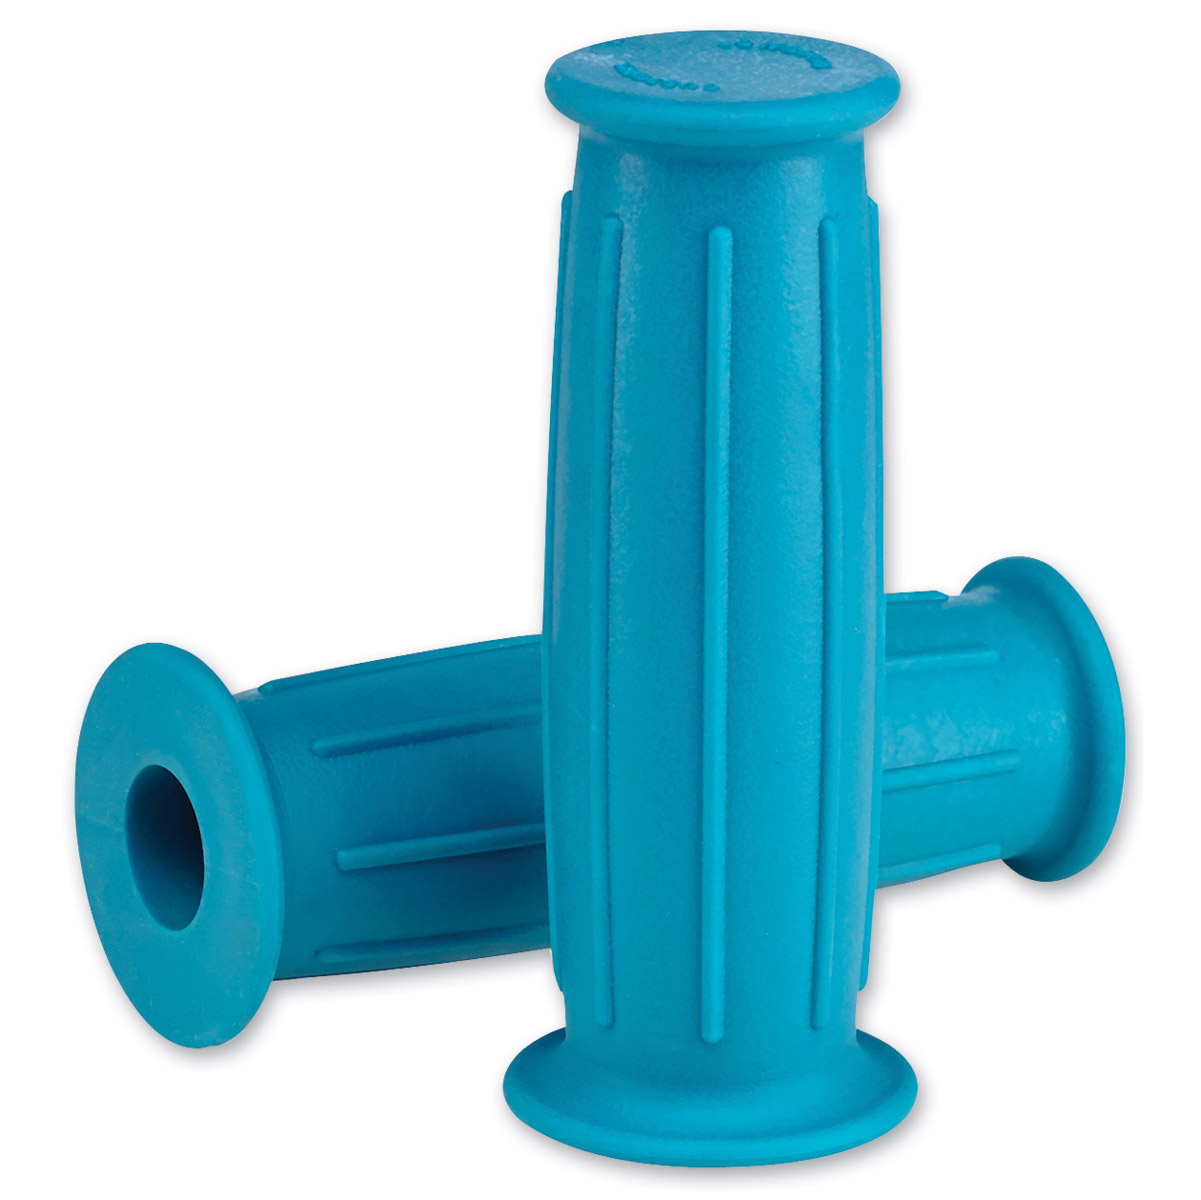 Lowbrow Customs Teal GT 7/8″ Grips